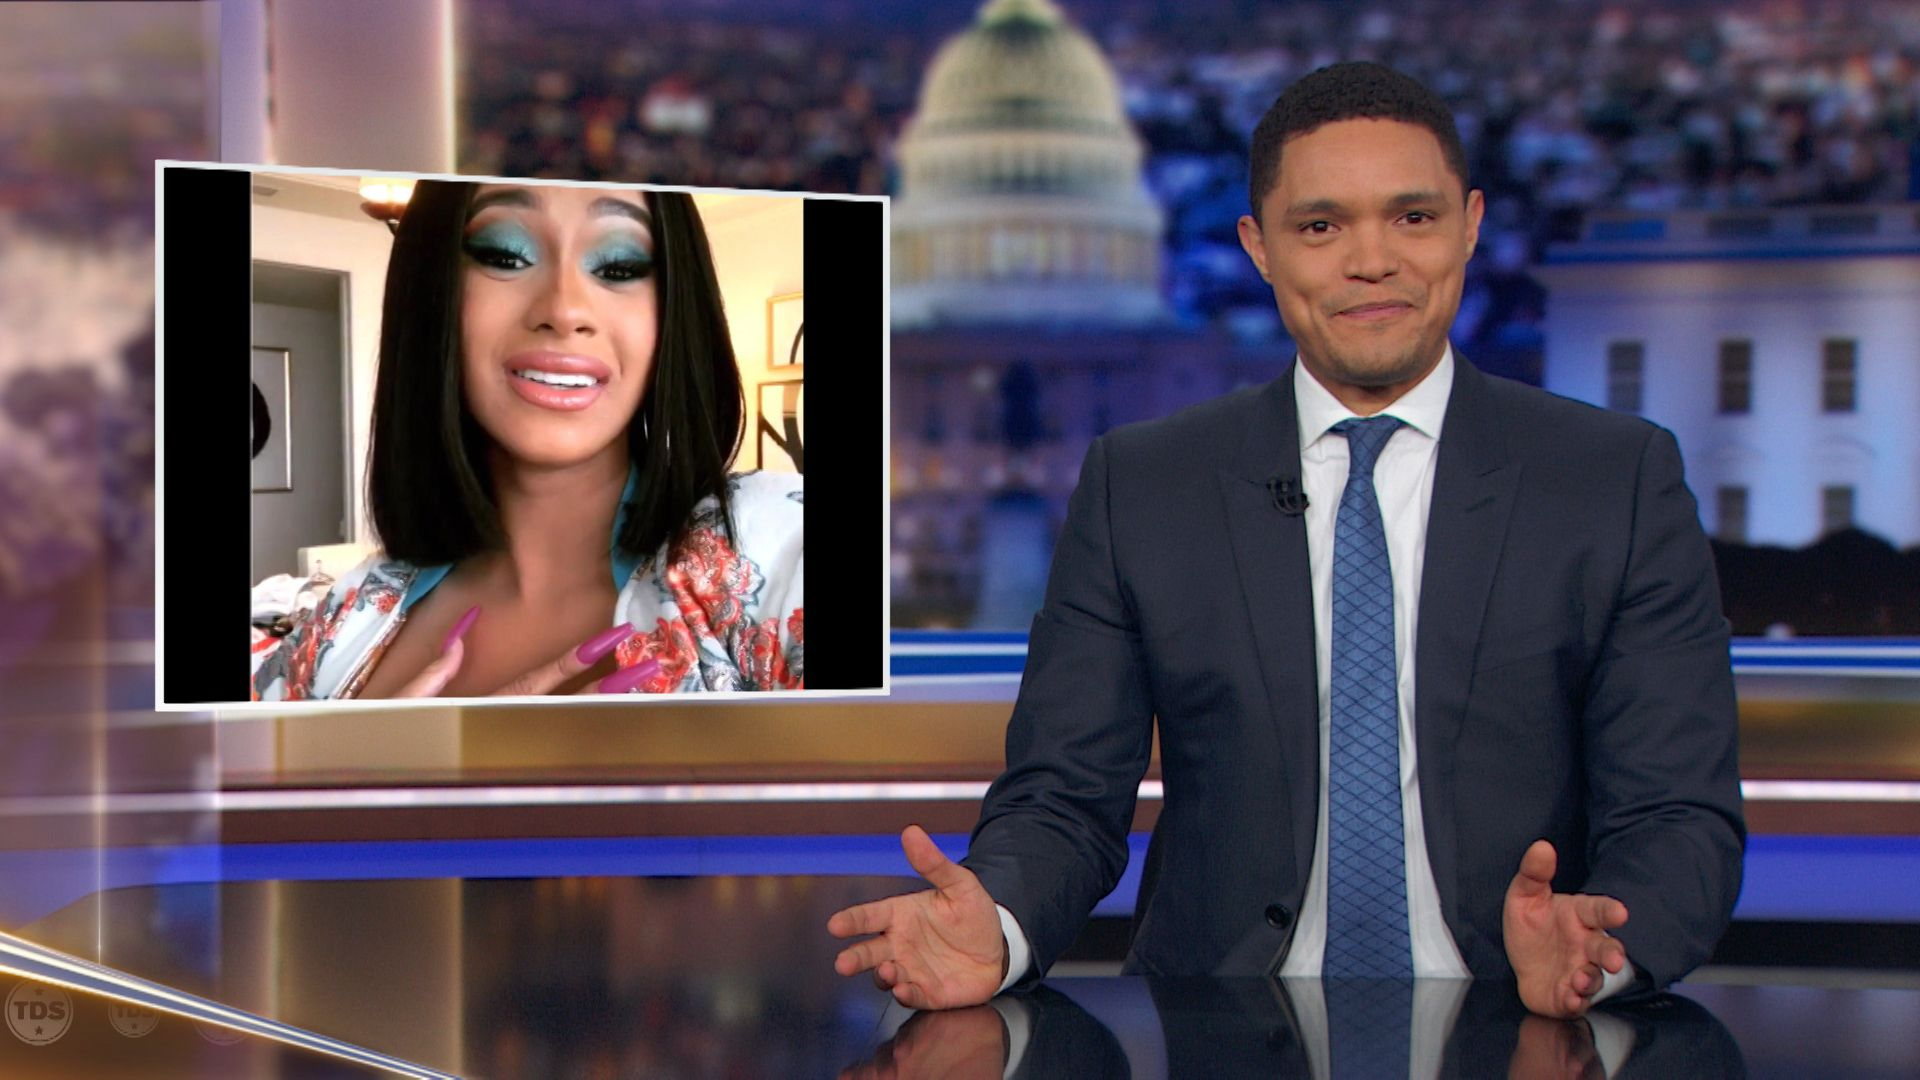 Cardi B Slams the Government Shutdown as Unpaid Workers Resort to Crowdfunding - The Daily Show with Trevor Noah (Video Clip)